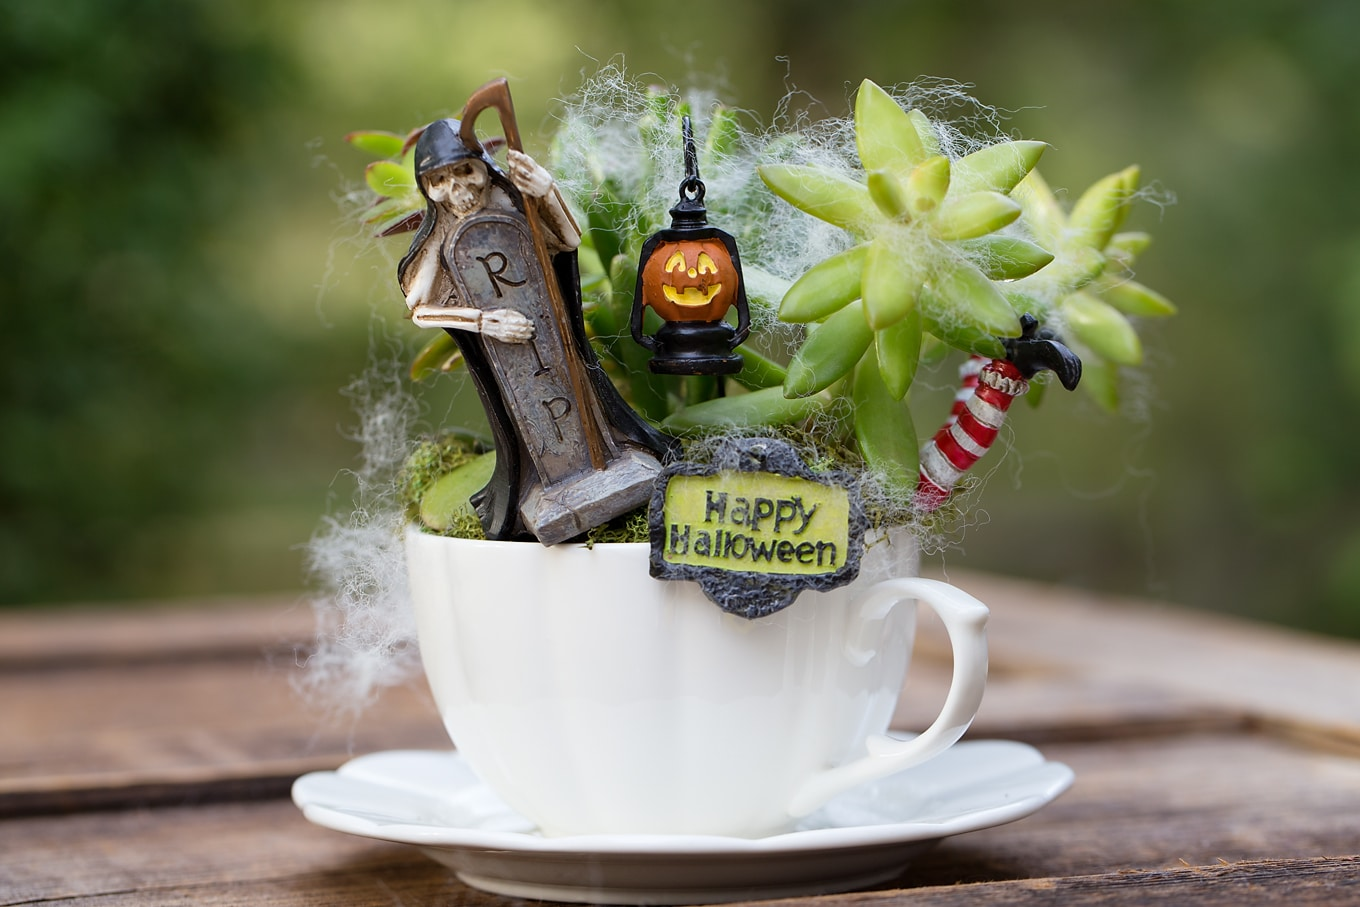 Halloween Teacup Garden